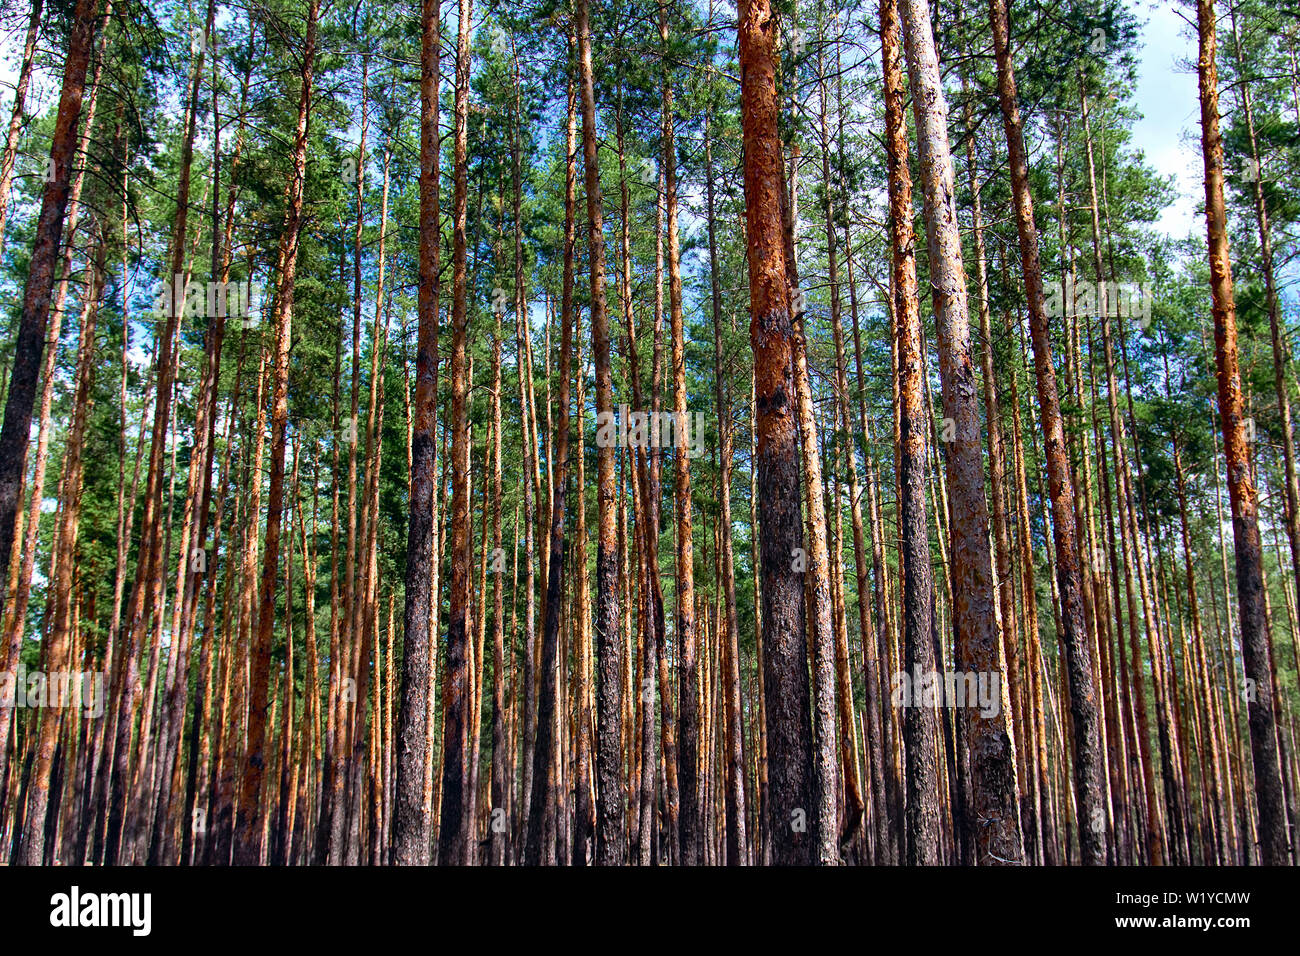 young pine forest close-up as background - Stock Image